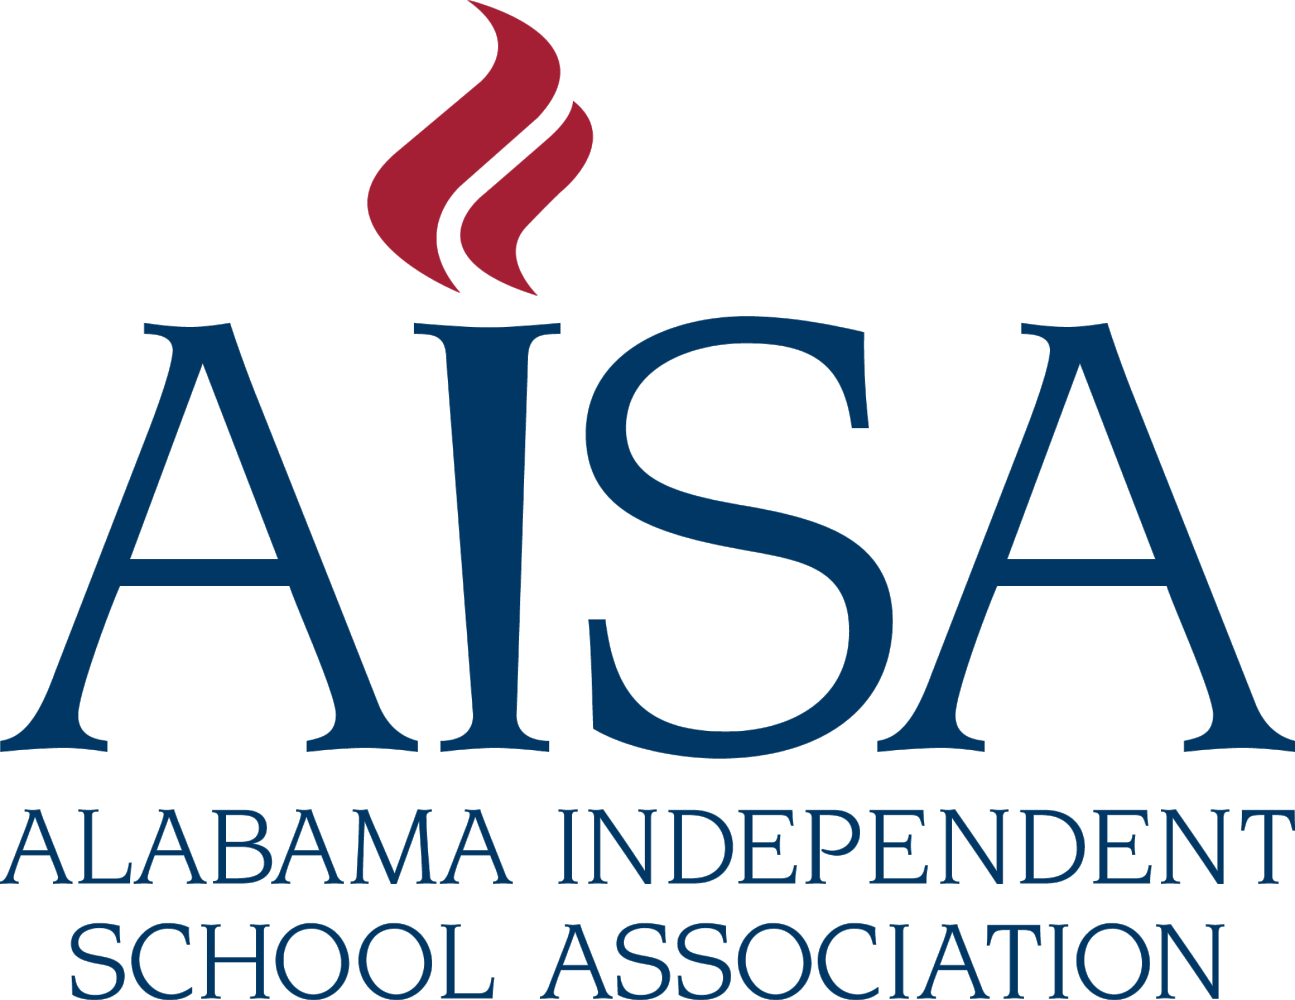 About Houston Academy - A current AISA Blue Ribbon School.